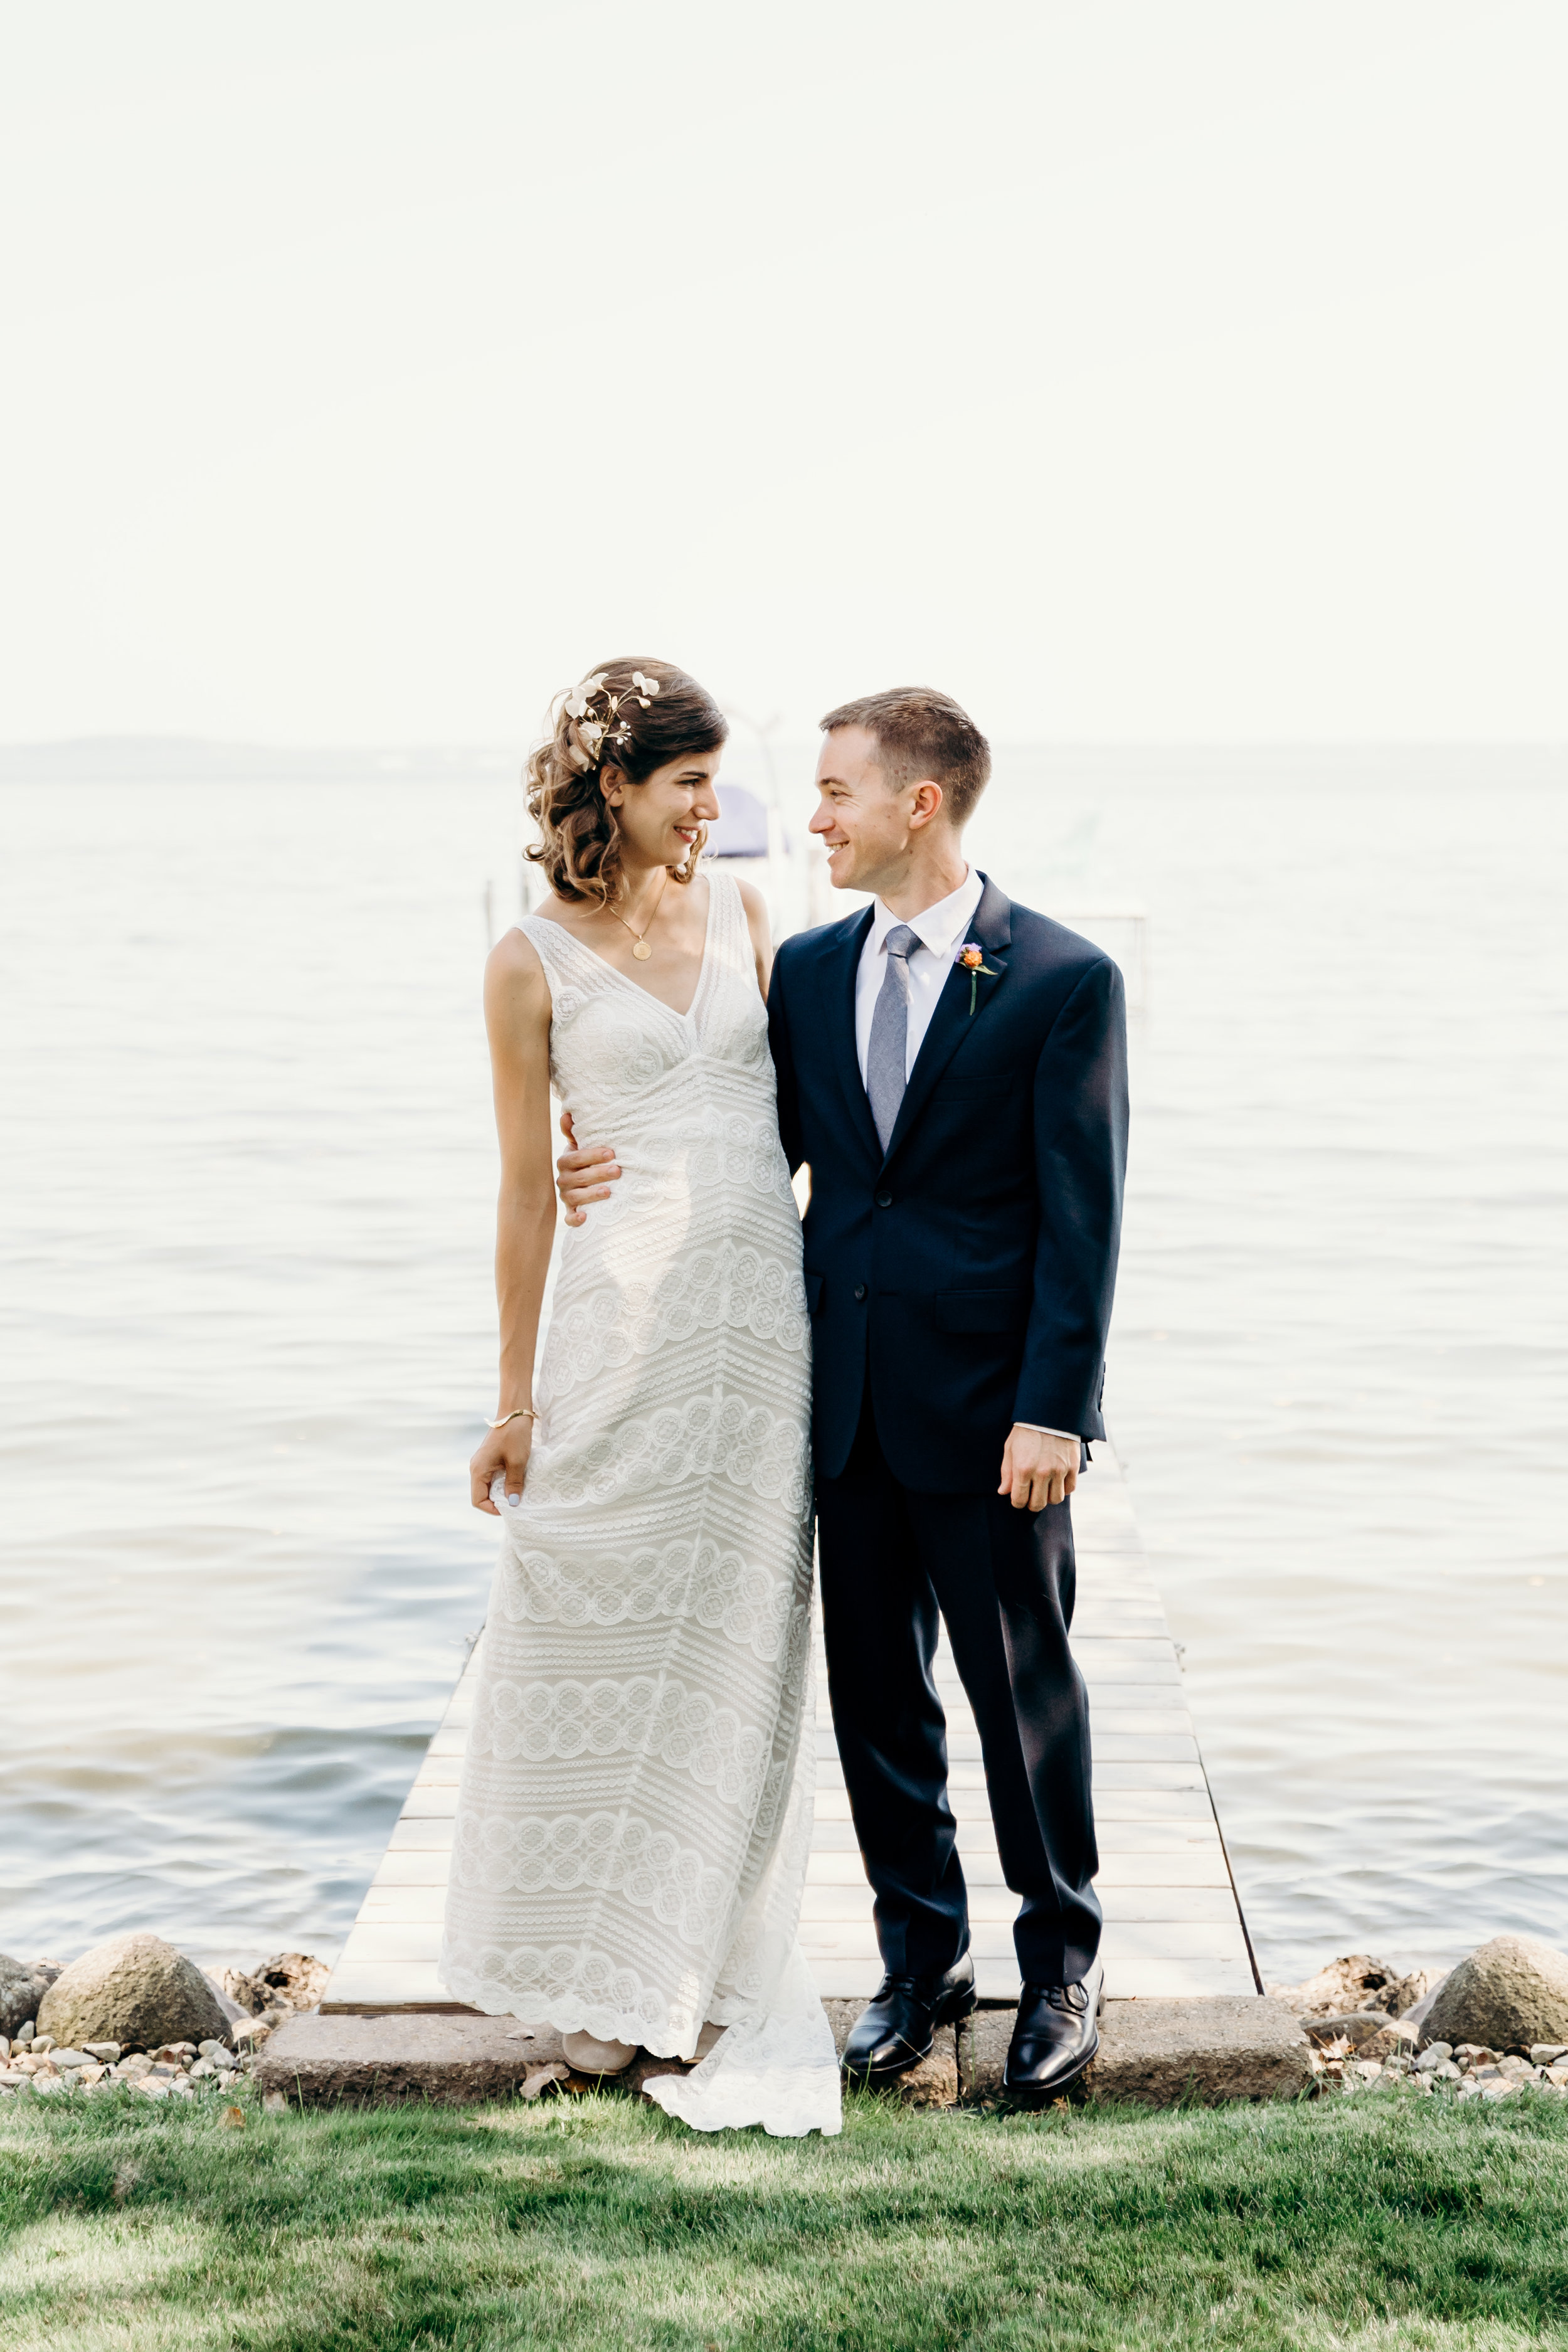 Bride and groom smile at each other at the edge of a dock.